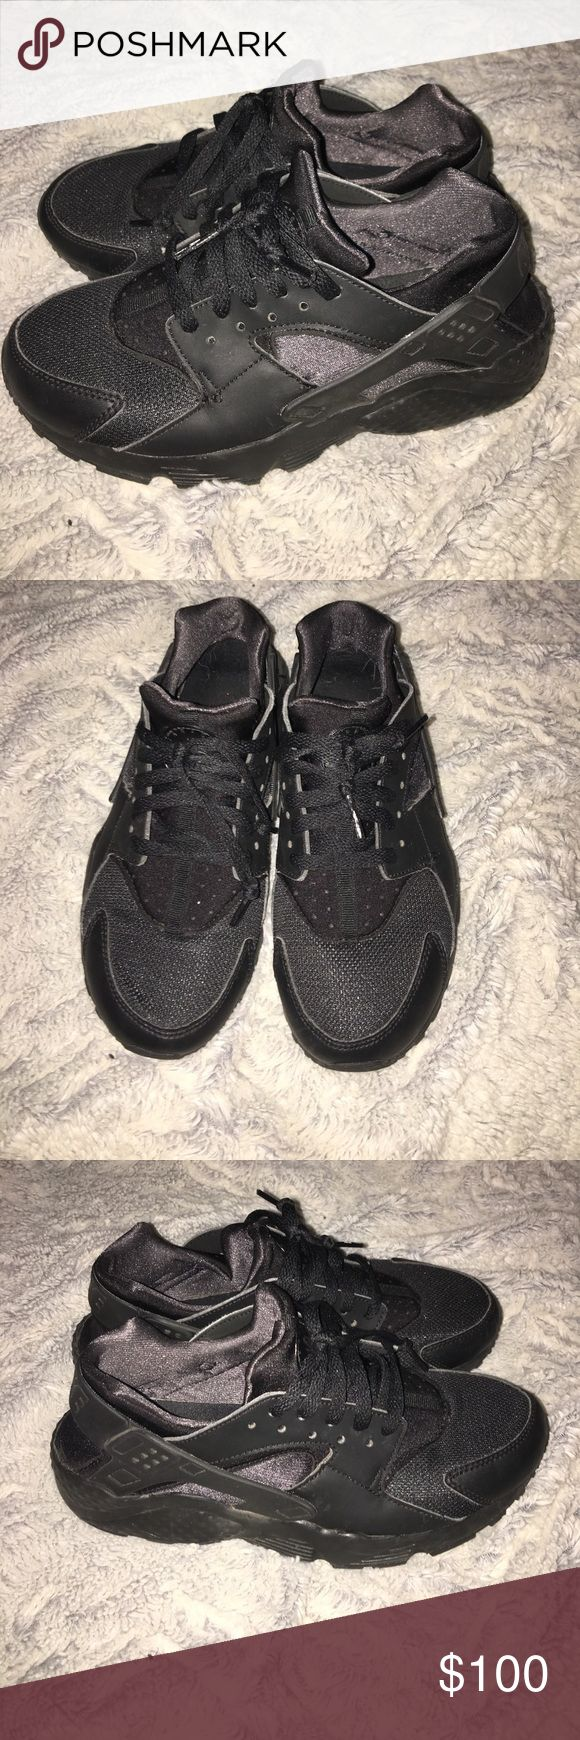 All Black Huaraches All black Nike Huaraches in excellent condition! They are a size 5.5 youth which is a woman's 7 Nike Shoes Sneakers